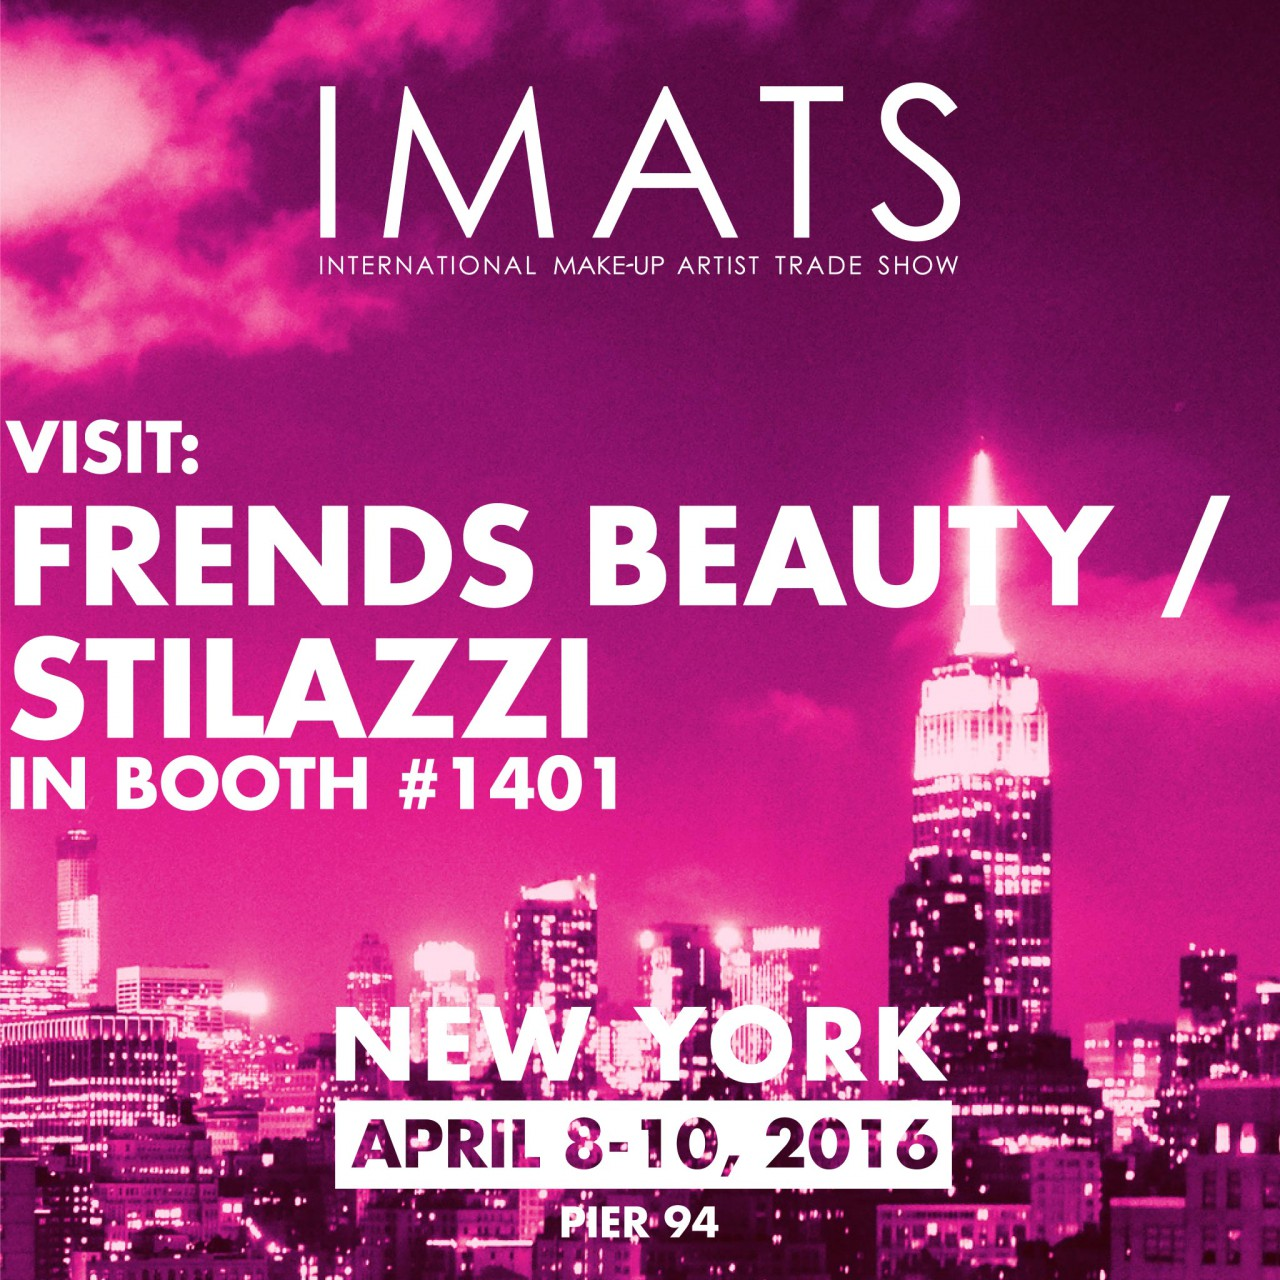 Can we talk about IMATS NYC for a minute?